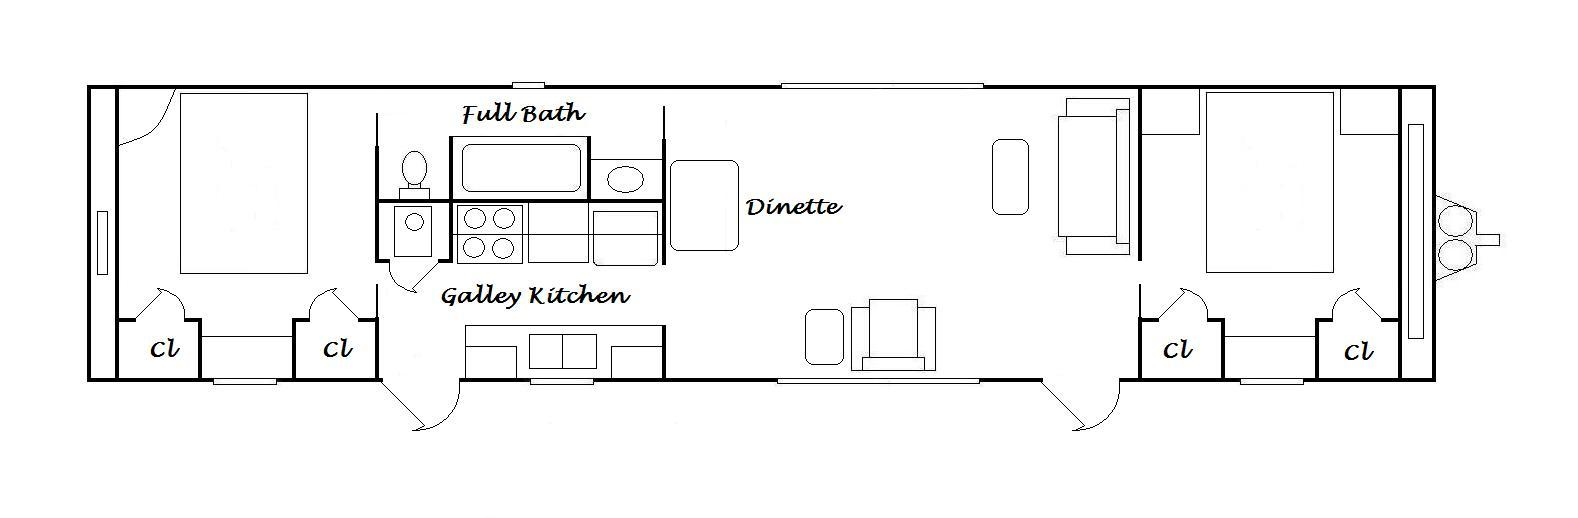 1 Bedroom Trailer Floor Plans Joy Studio Design Gallery Best Design